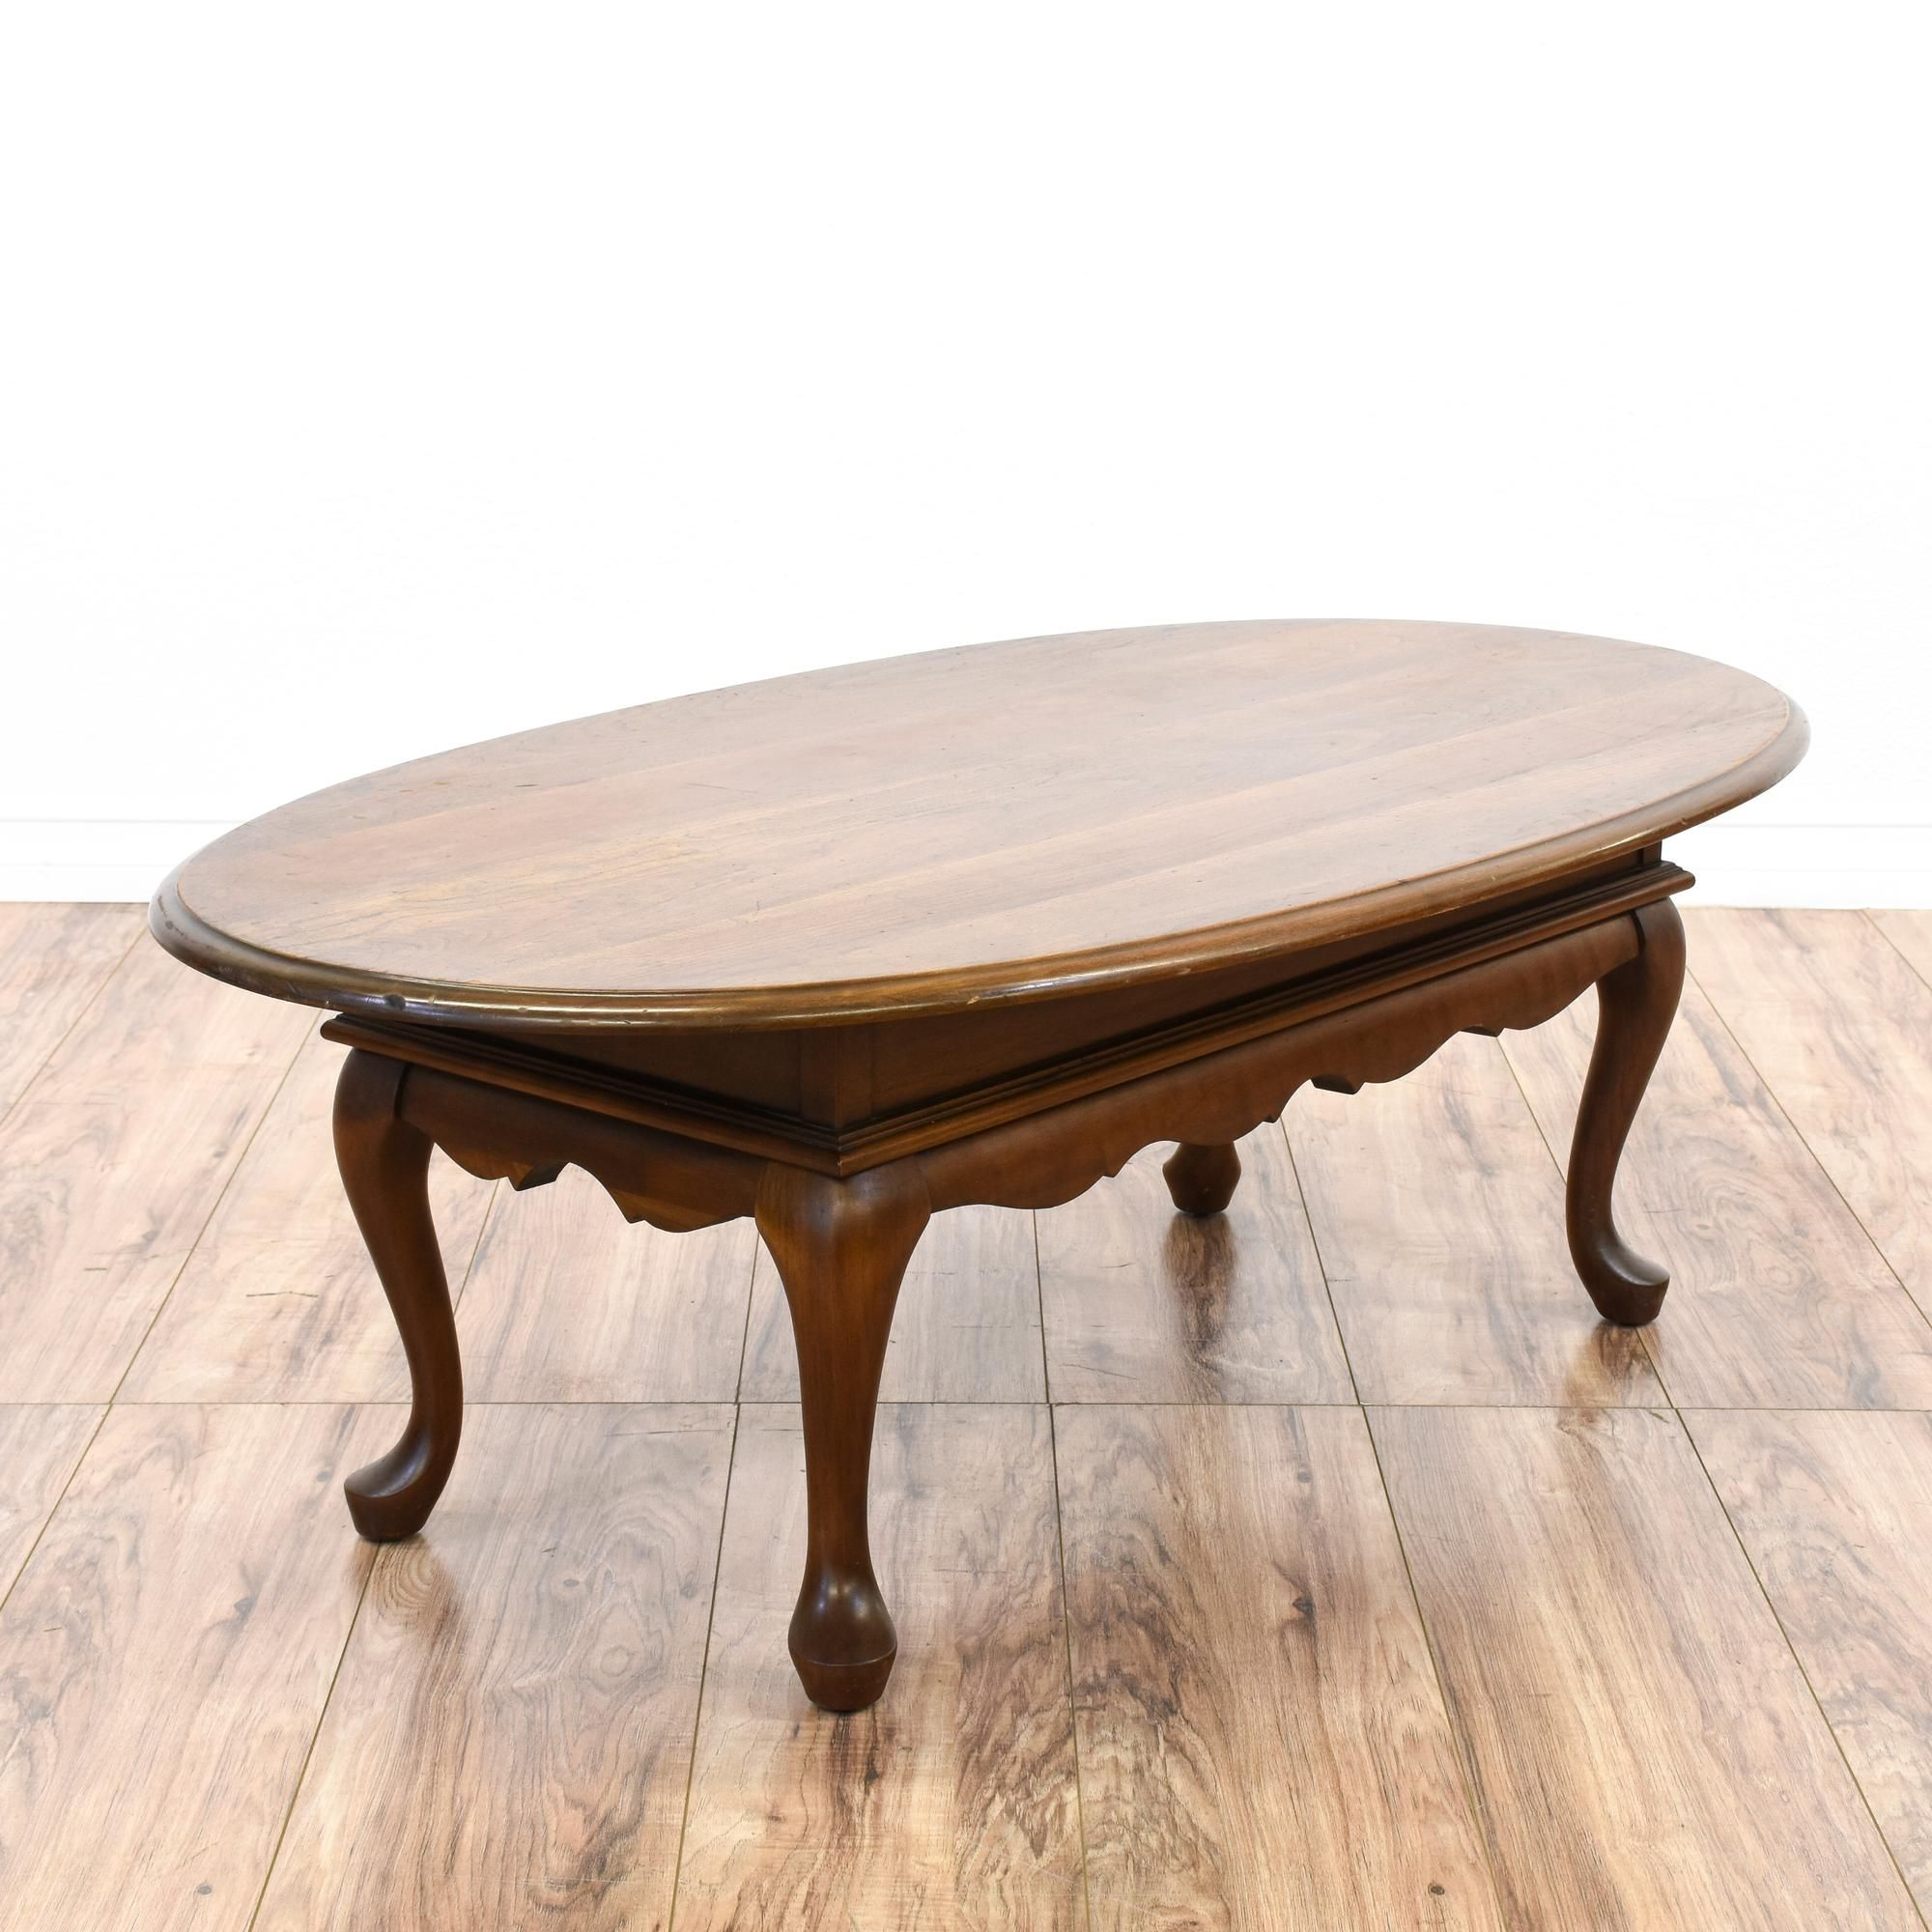 oval queen anne coffee table | oval coffee tables, oval table and